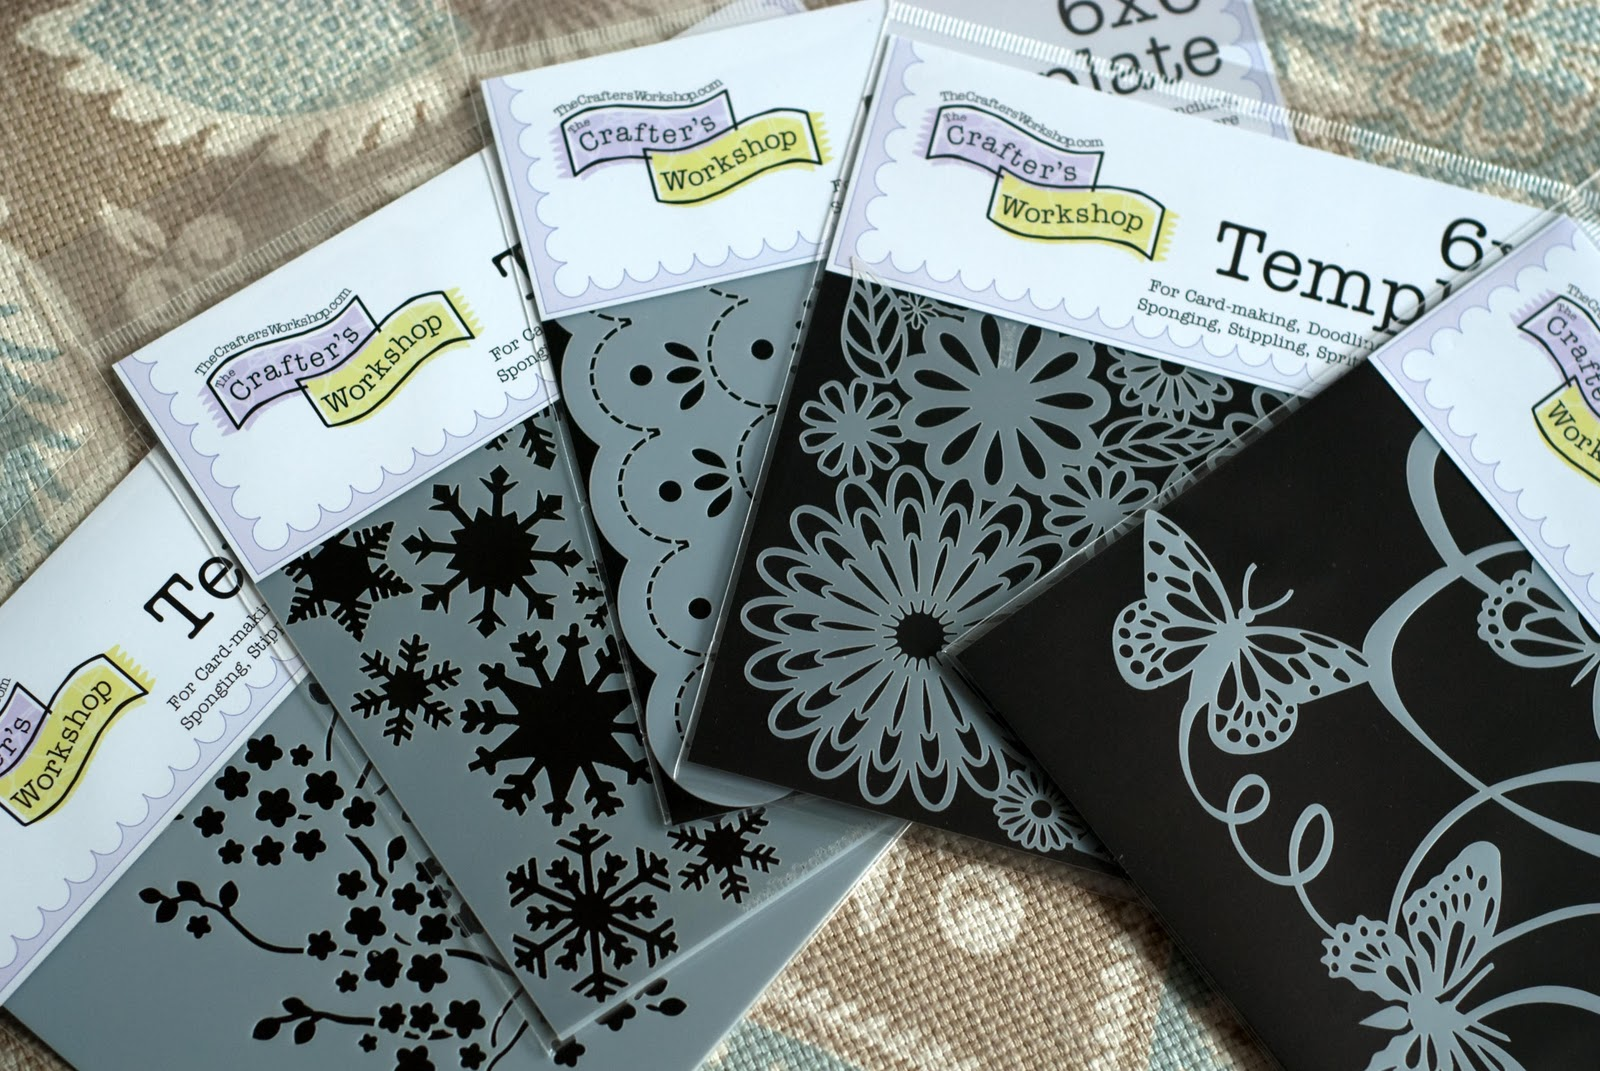 Scrap that!: Crafters Workshop Templates